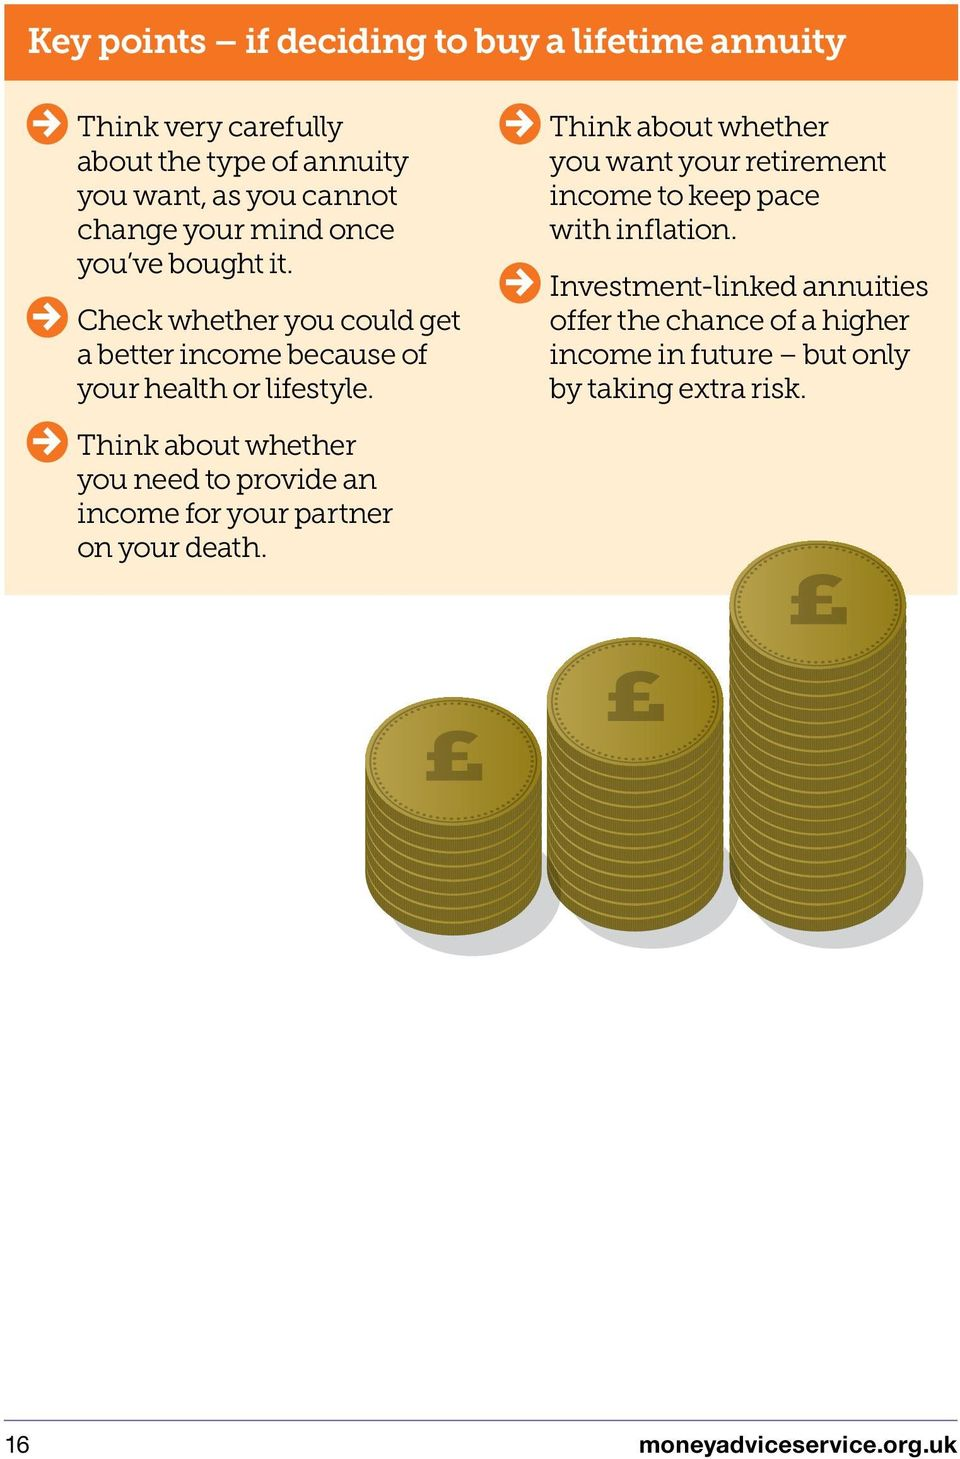 Think about whether you want your retirement income to keep pace with inflation.